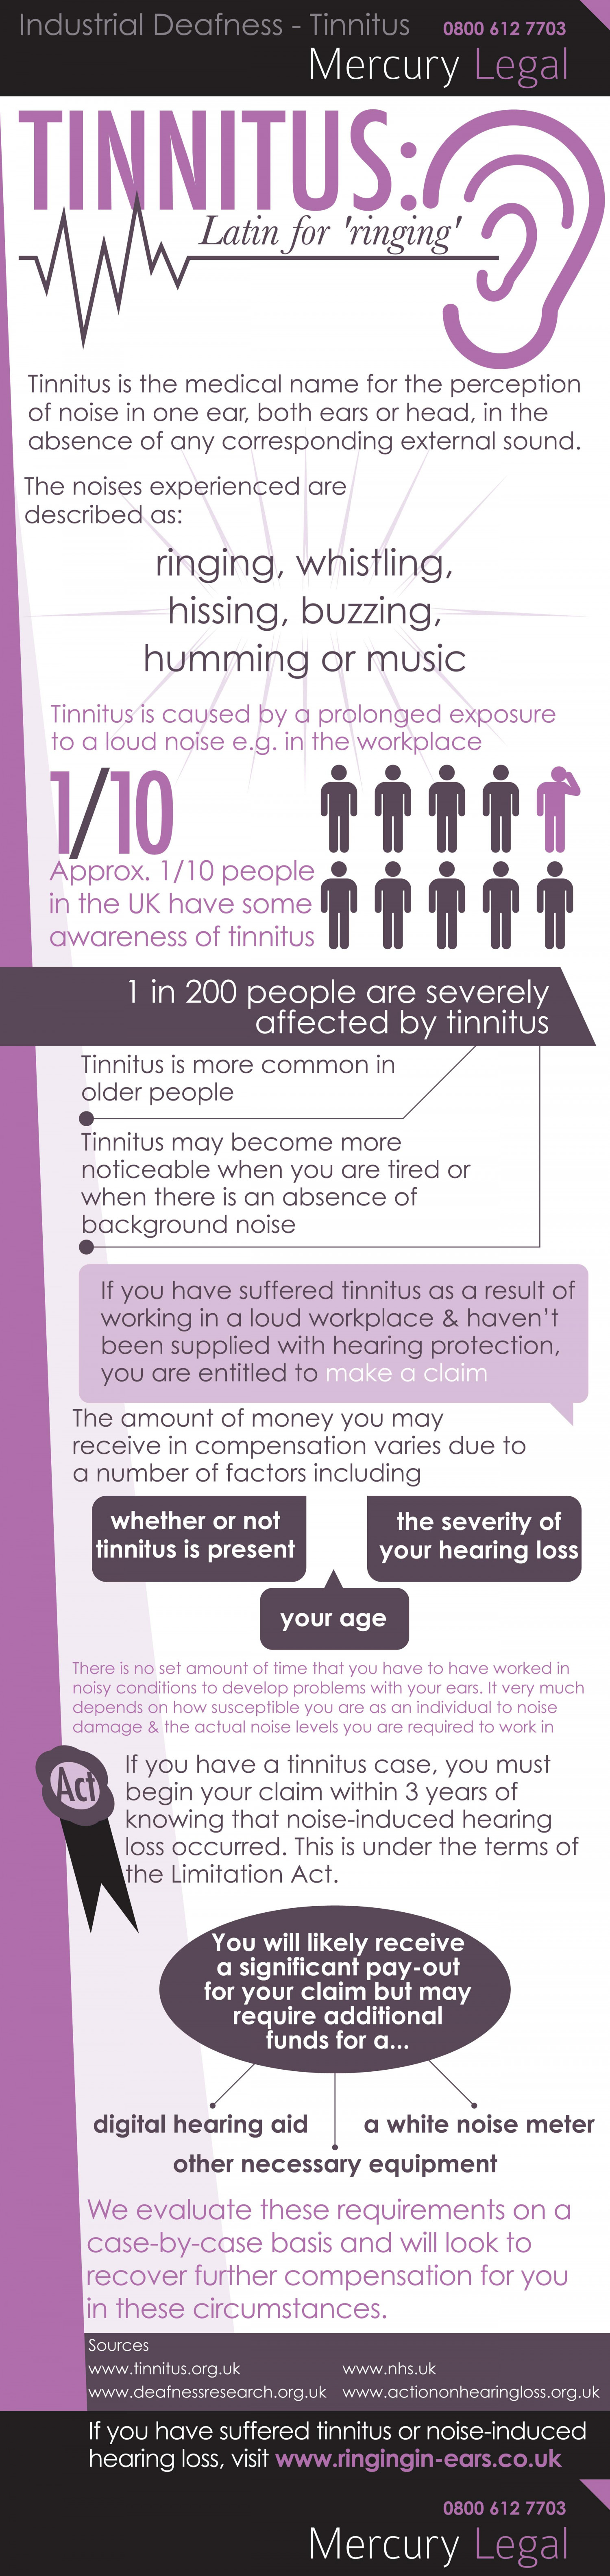 [INFOGRAPHIC] Tinnitus & Deafness Statistics Infographic